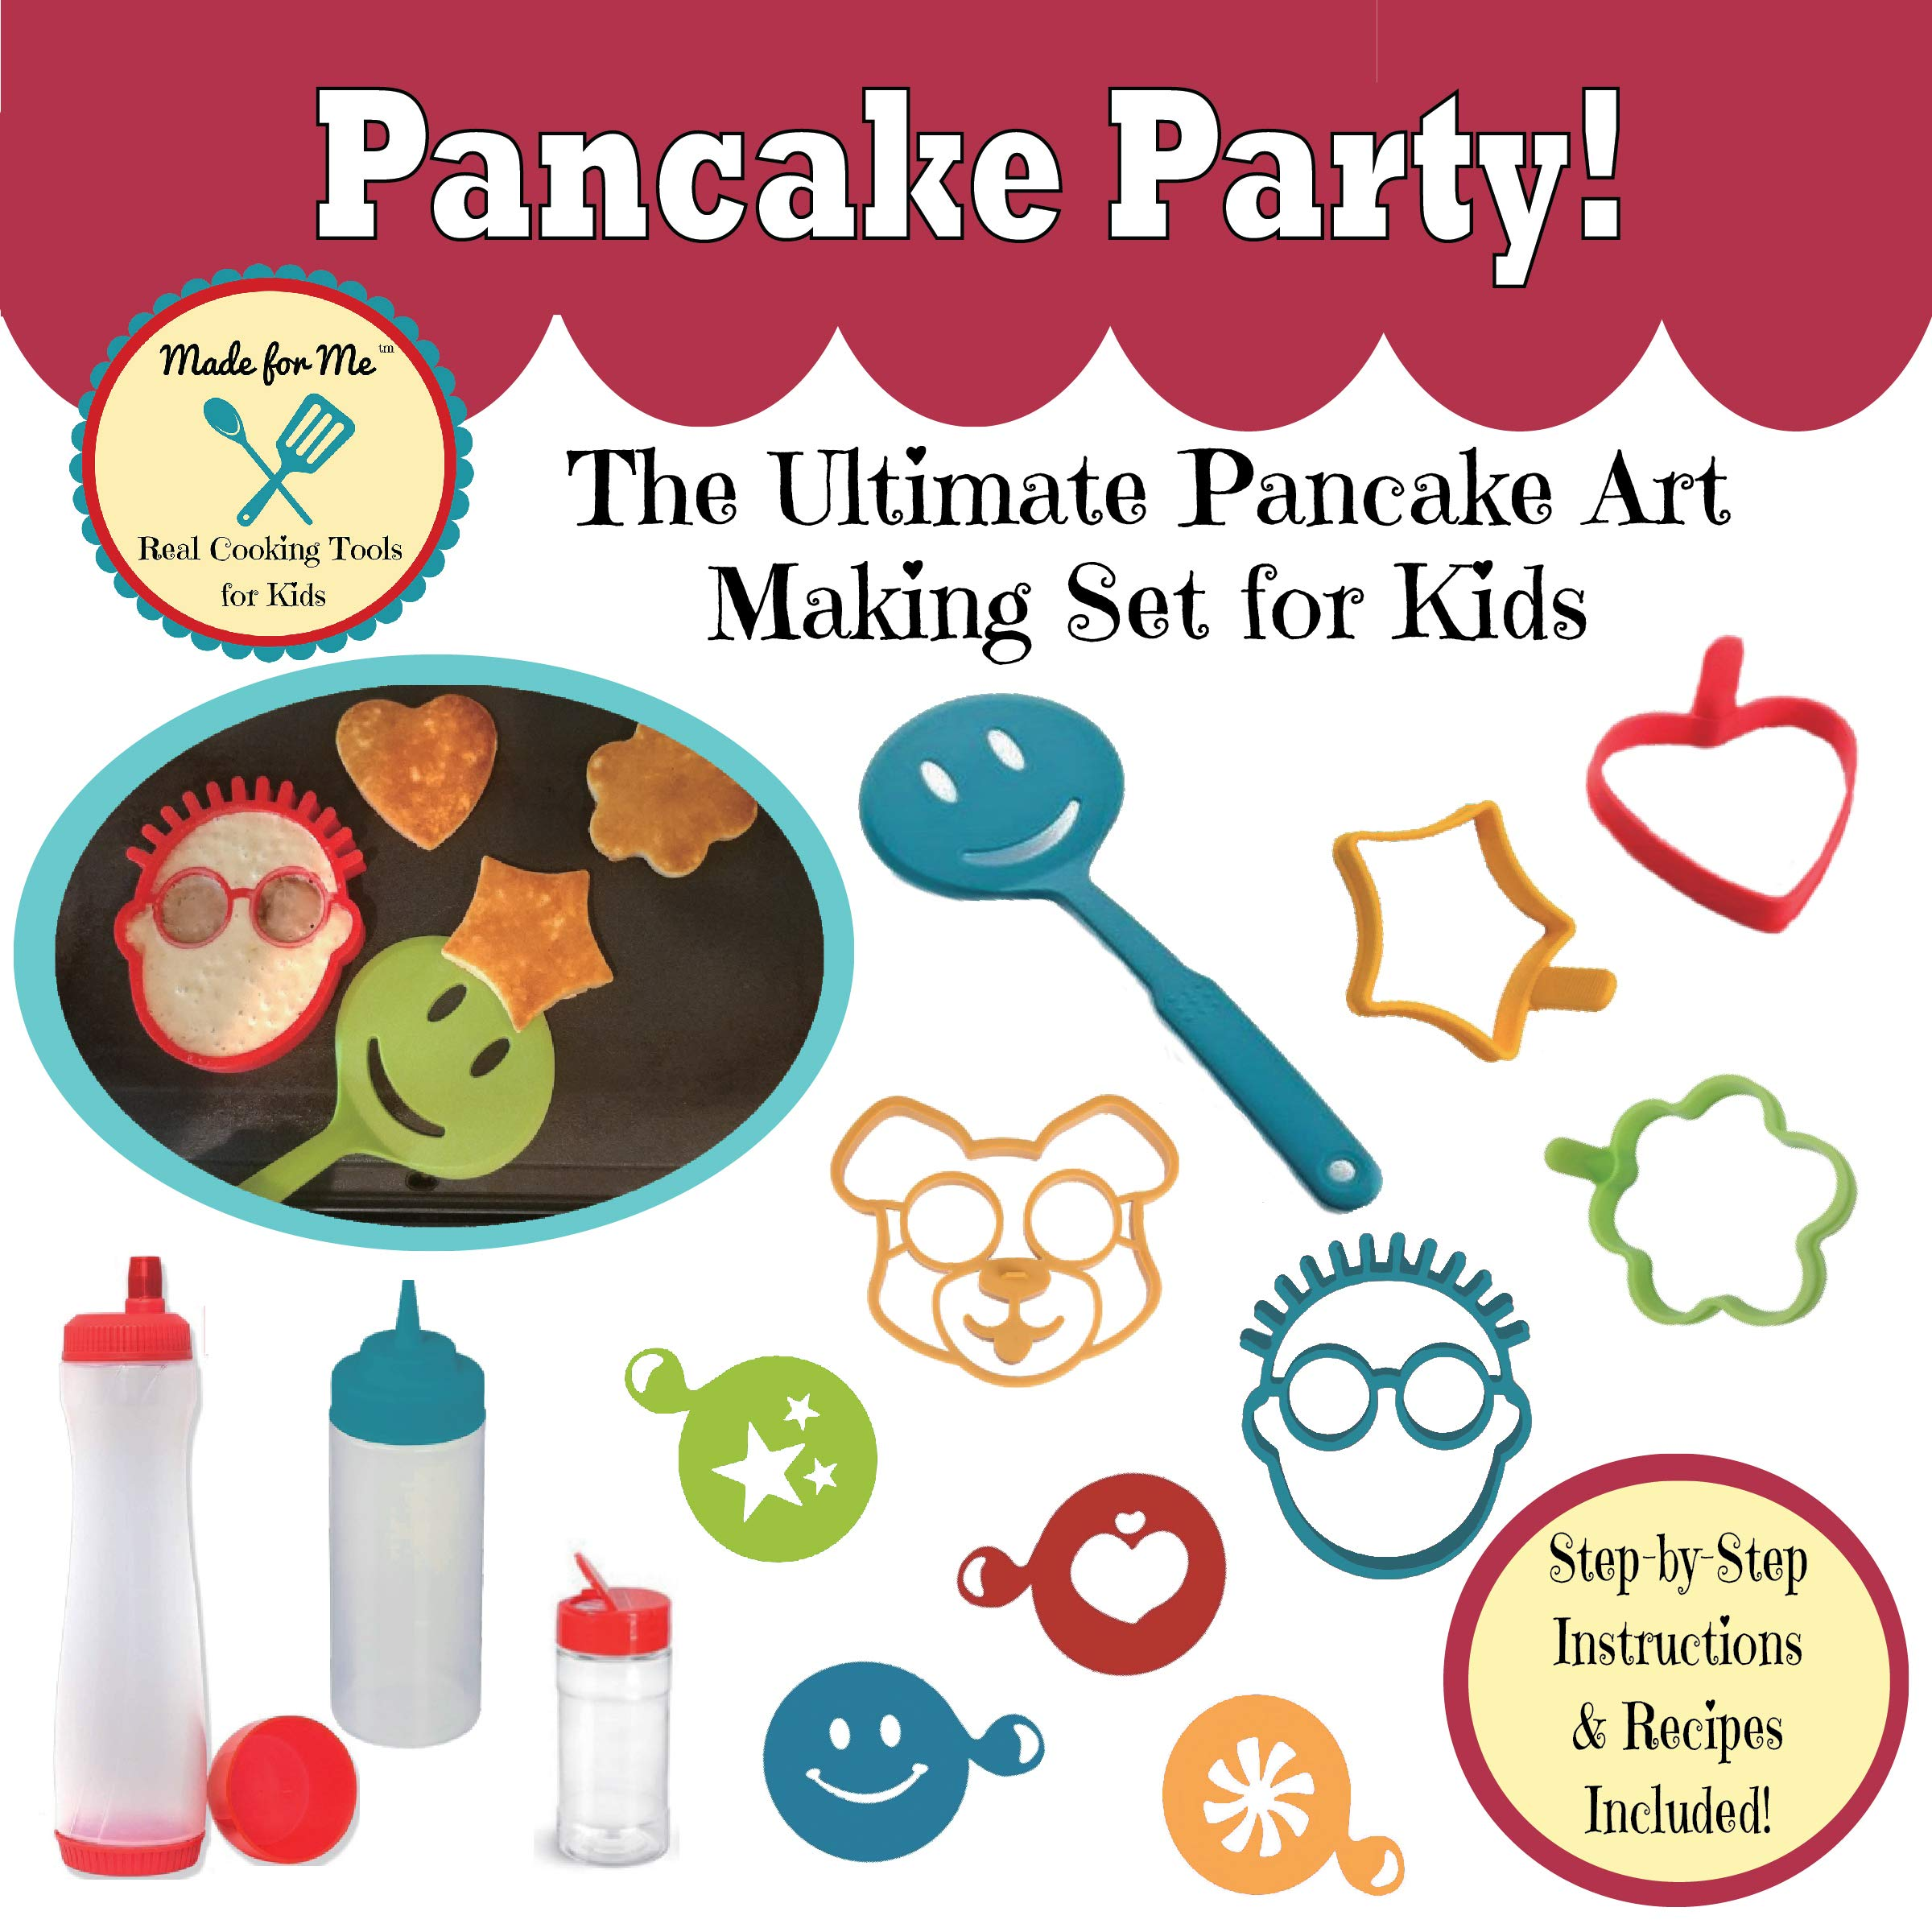 Pancake Party! The Ultimate Pancake Art Making Set for Kids: WELCOME BACK TO SCHOOL! - REG $35.95 - Excellent gift for children, young bakers, chefs! baking, cooking kit for boys & girls! by Made for Me